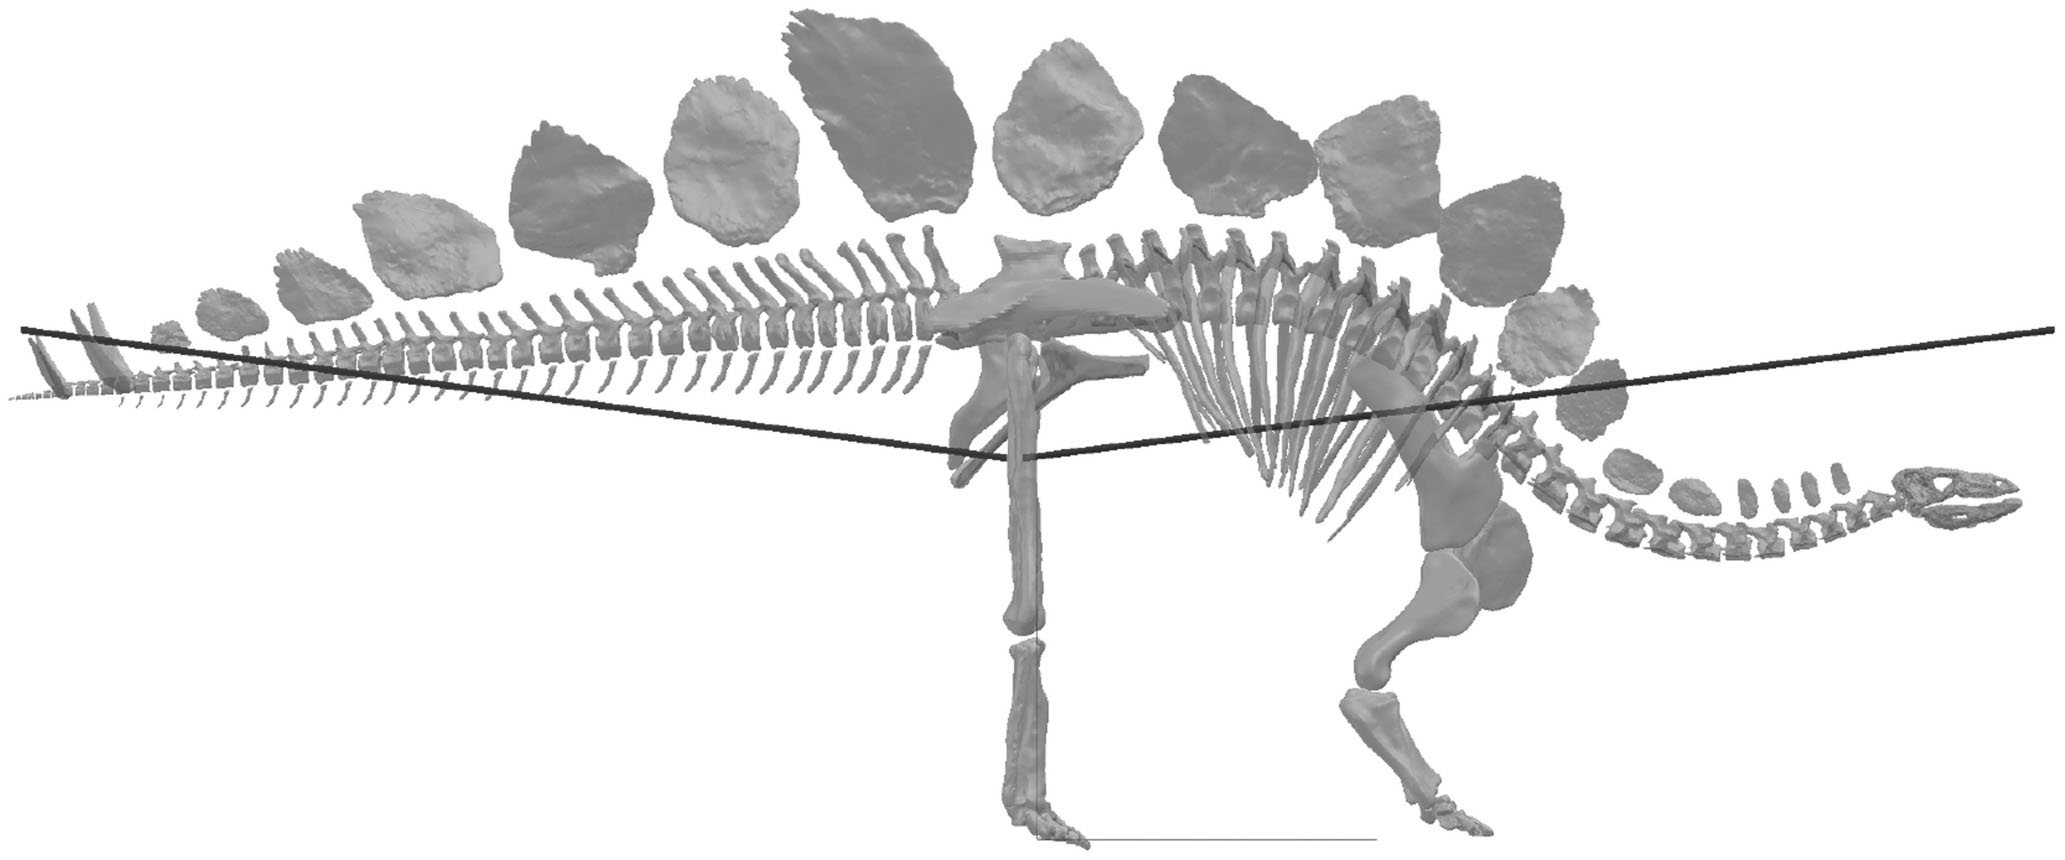 Muscle Moment Arm Analyses Applied to Vertebrate